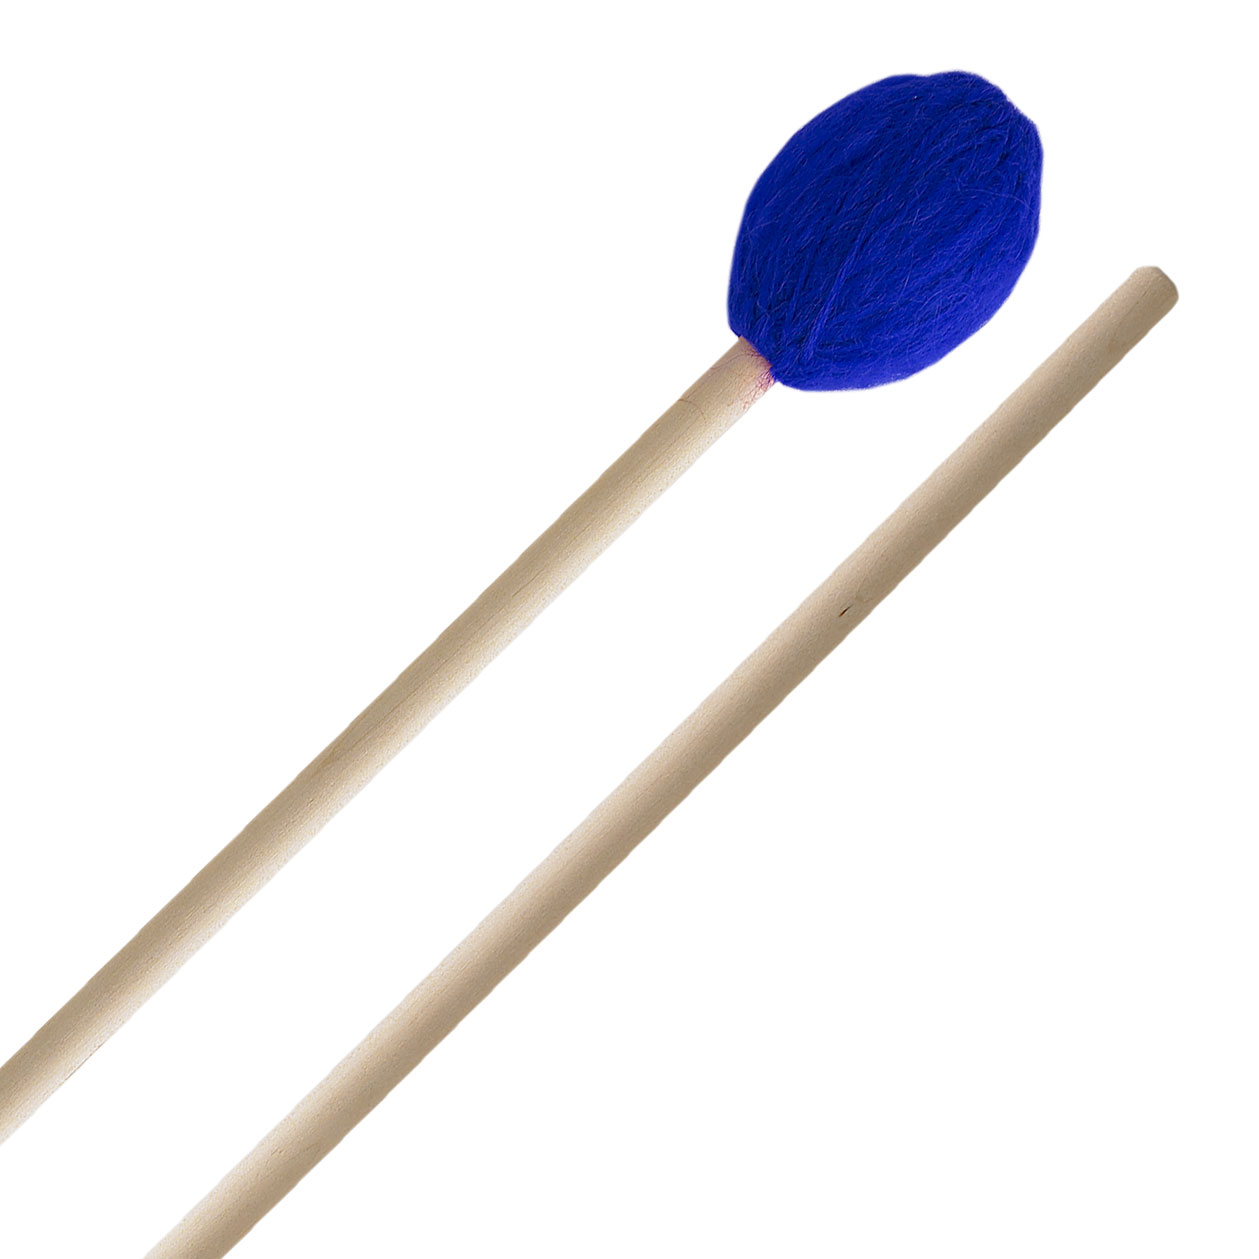 Innovative Percussion She-e Wu Signature Medium Marimba Mallets